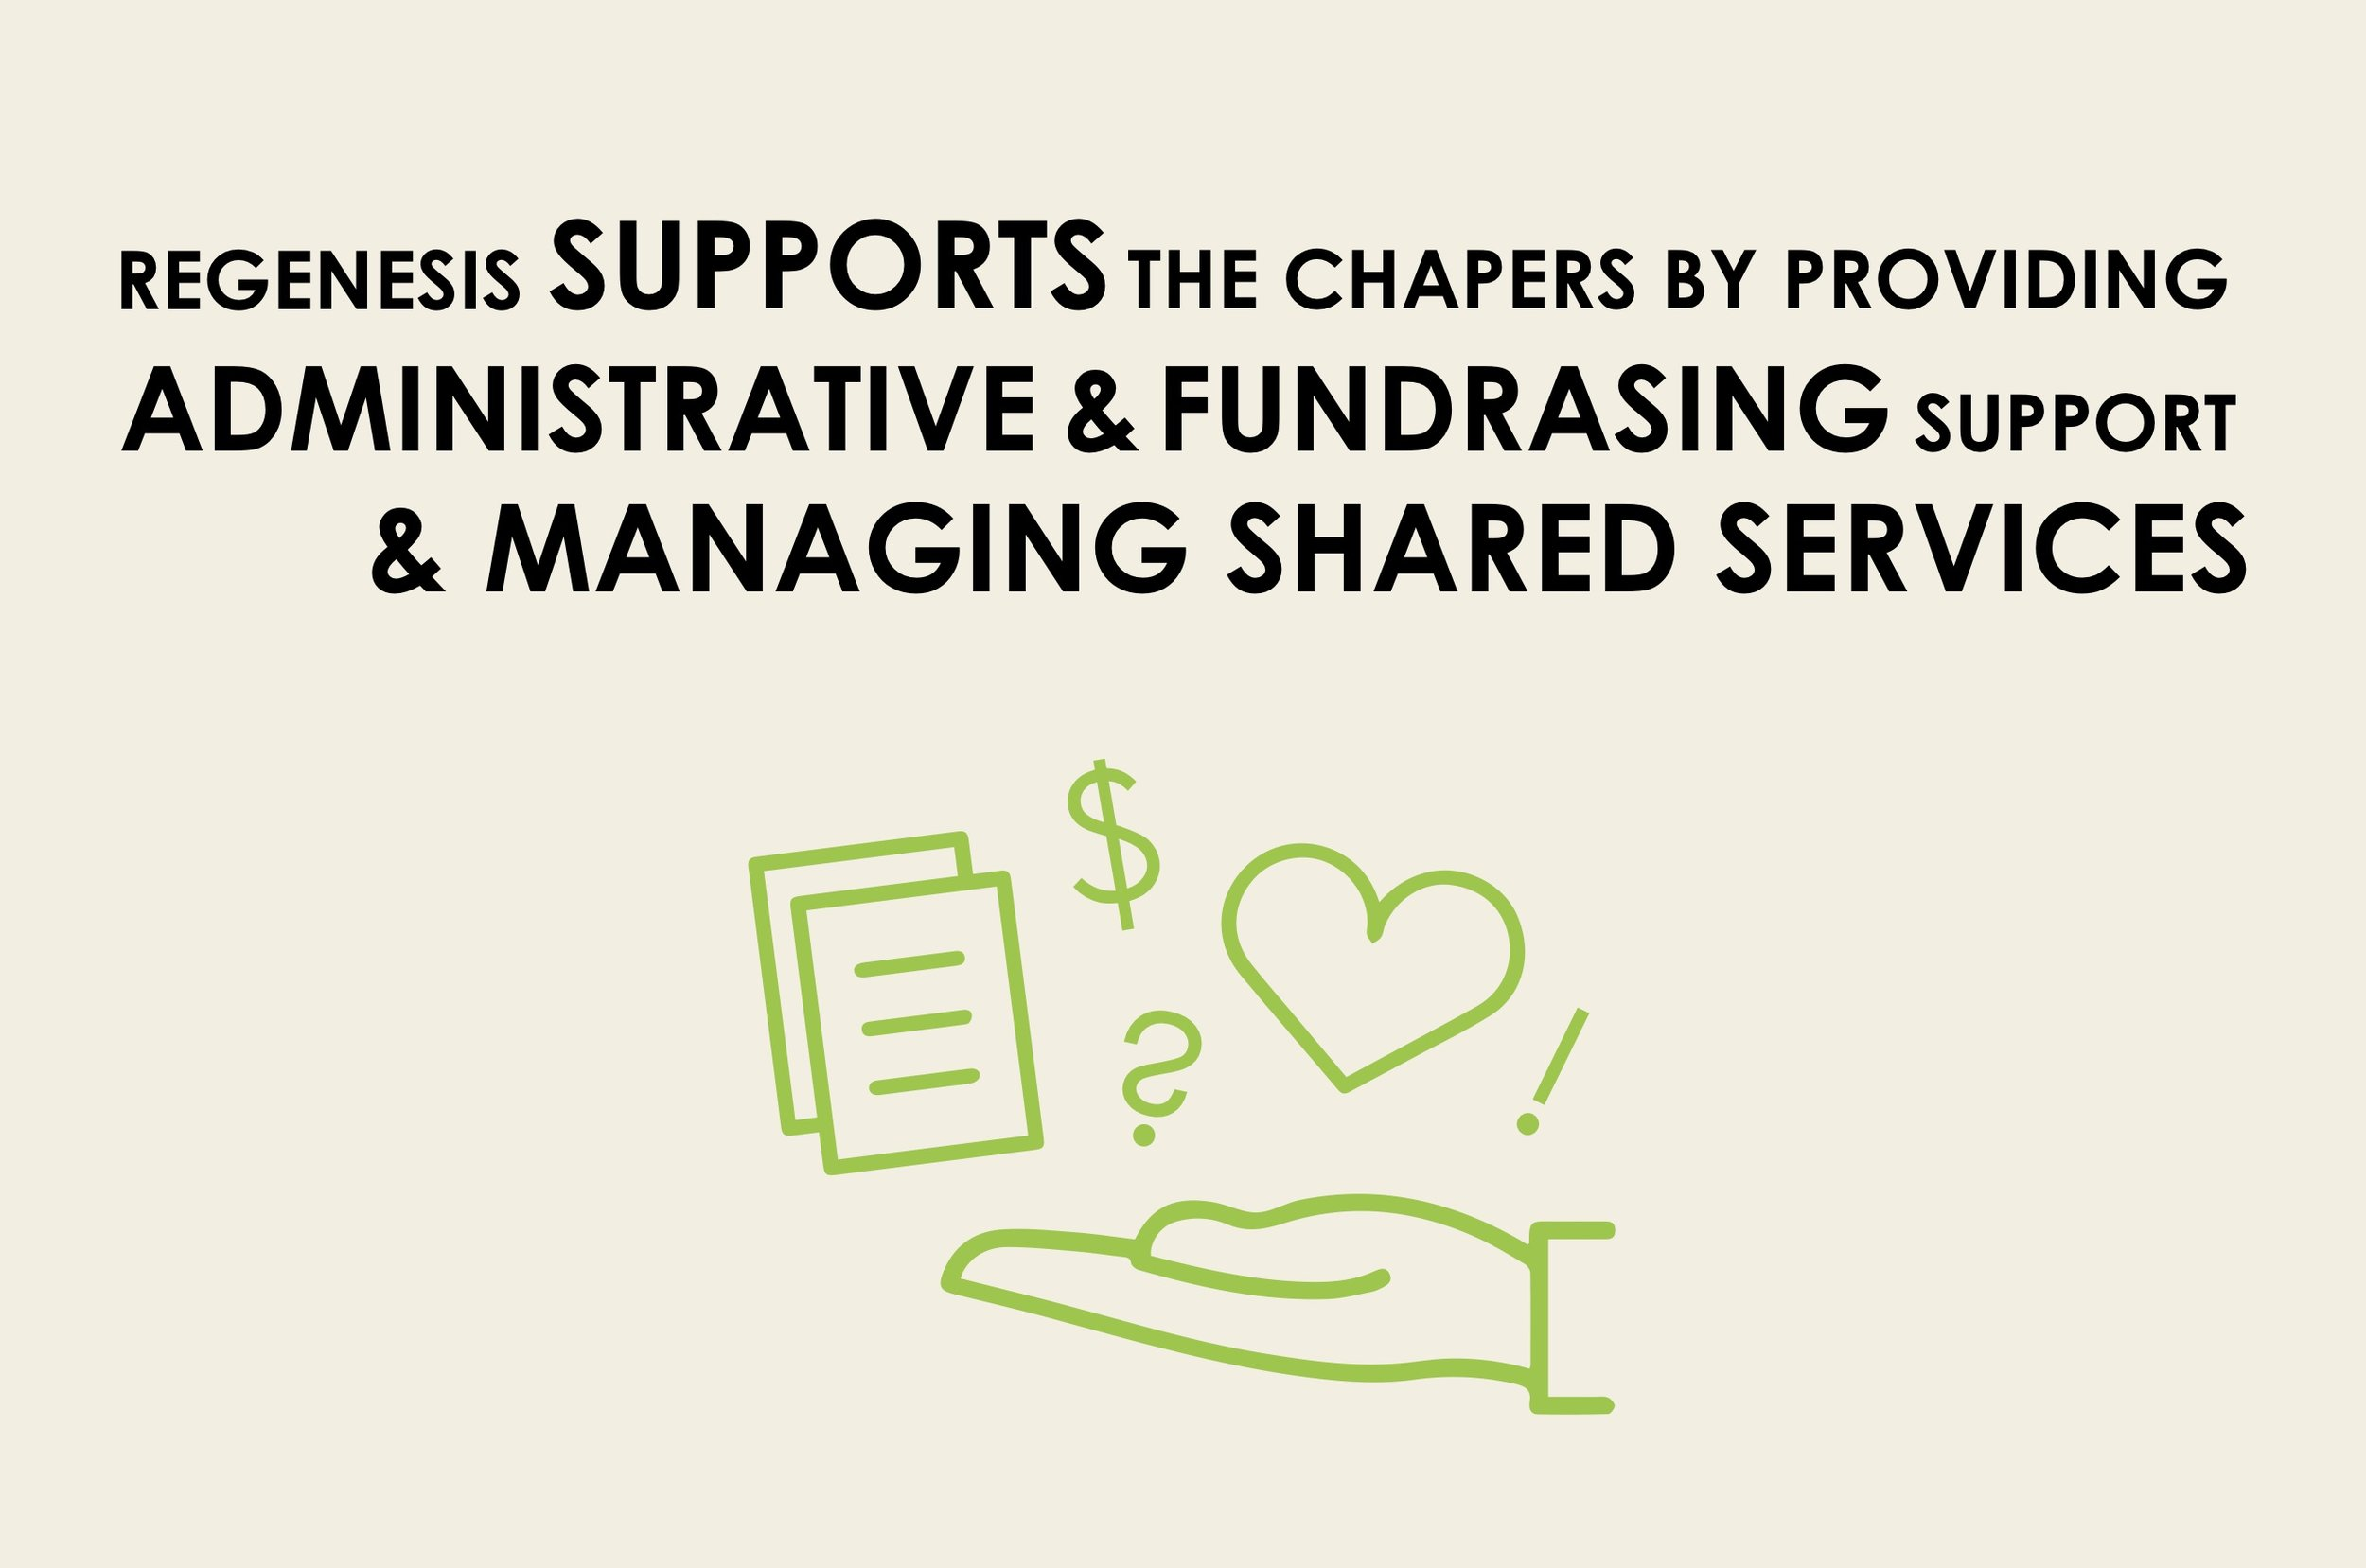 Regenesis supports the chapters by providing administrative and funding support.